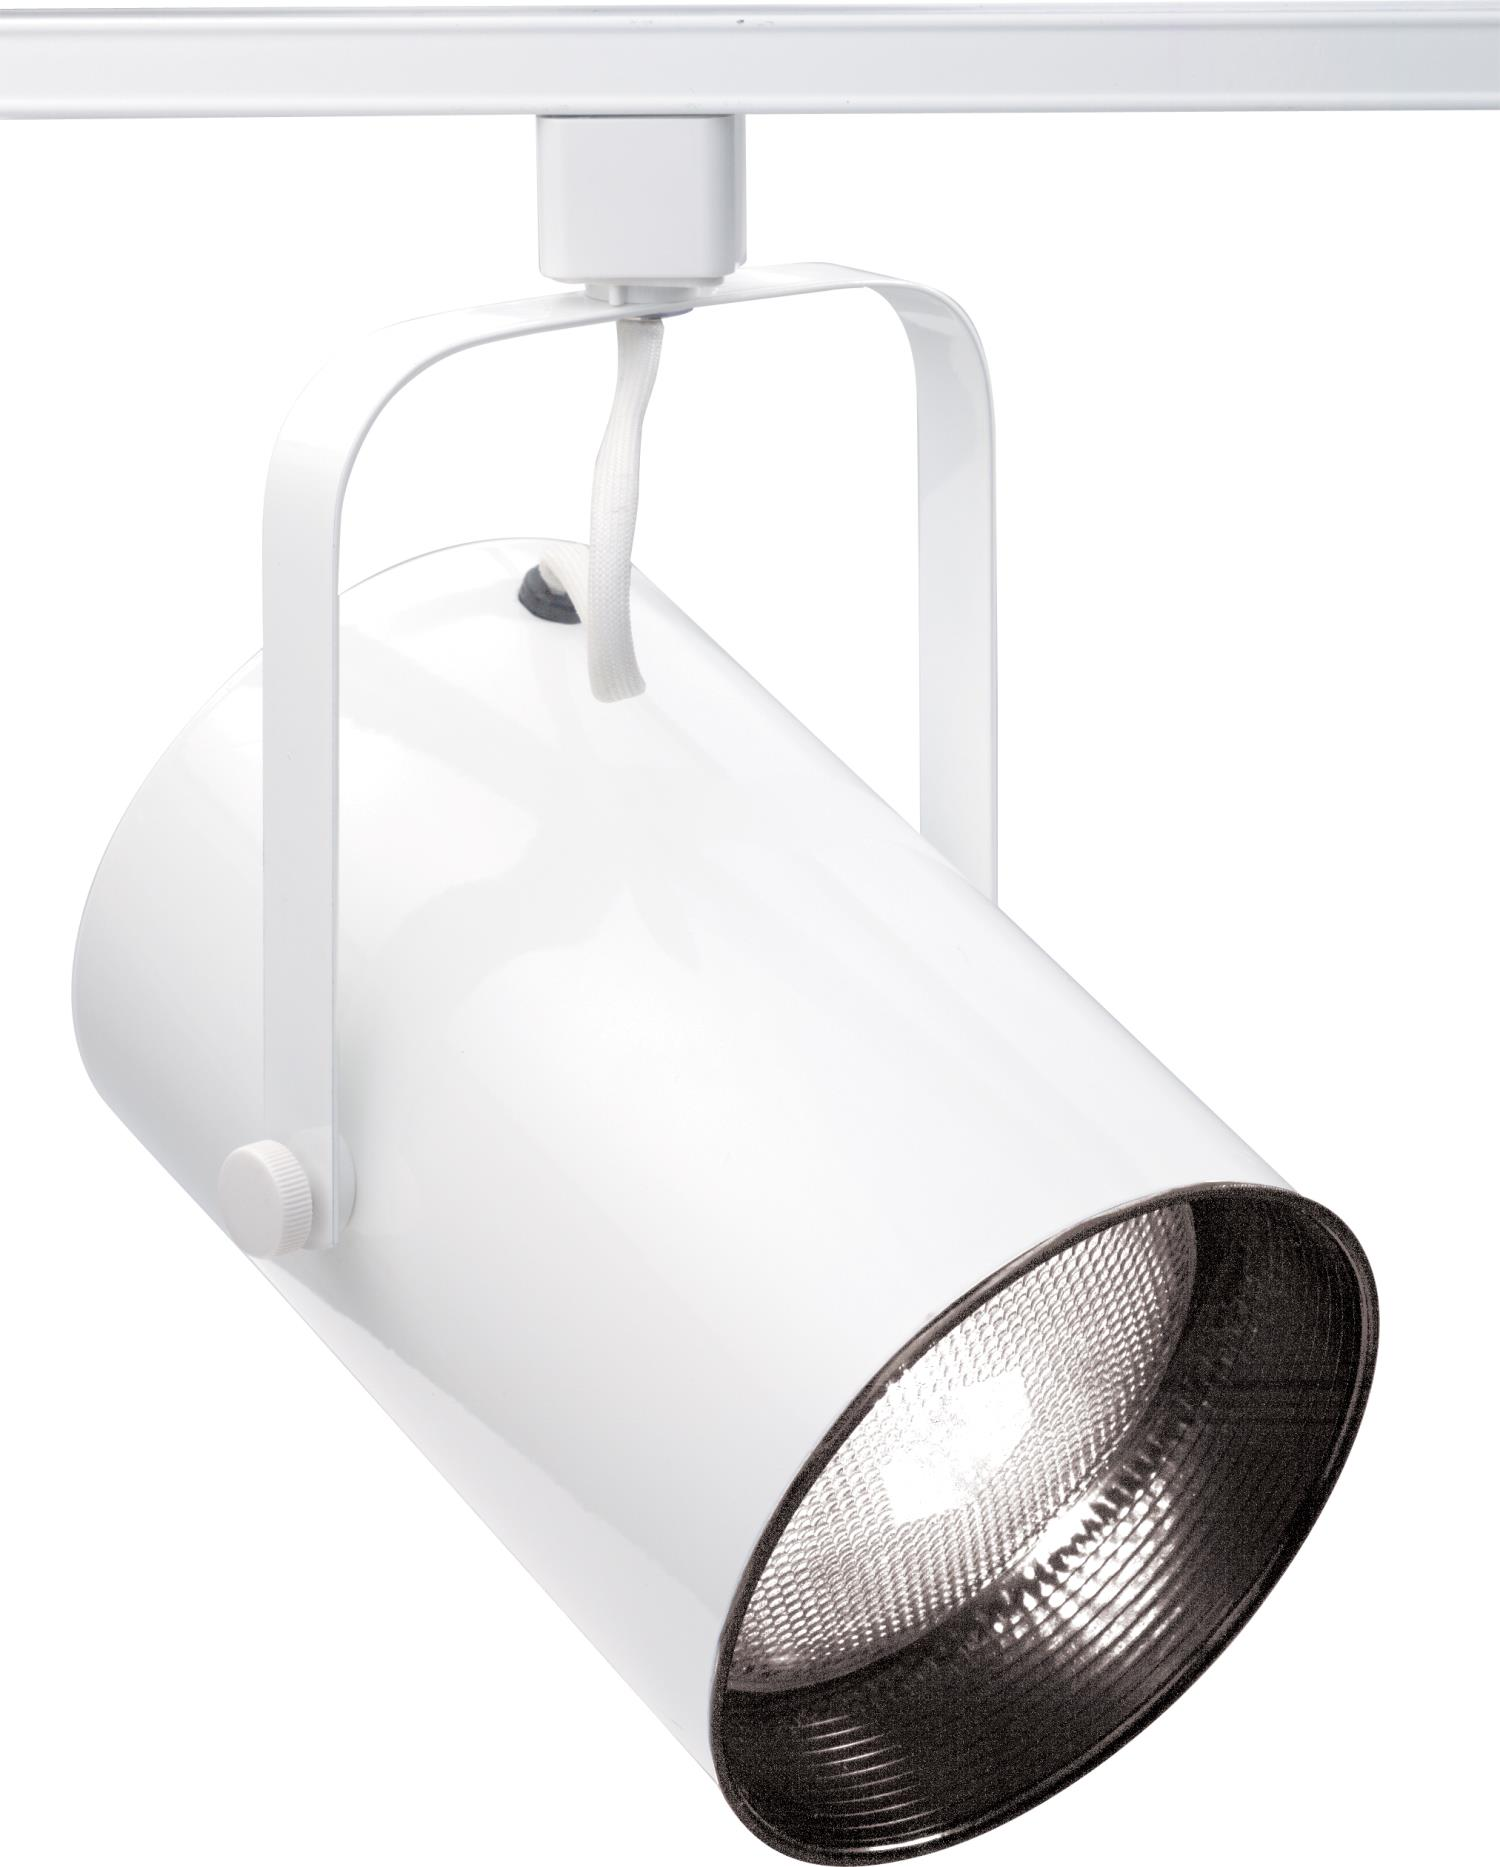 Awesome Nuvo Lighting In White For Outdoor Lighting Ideas